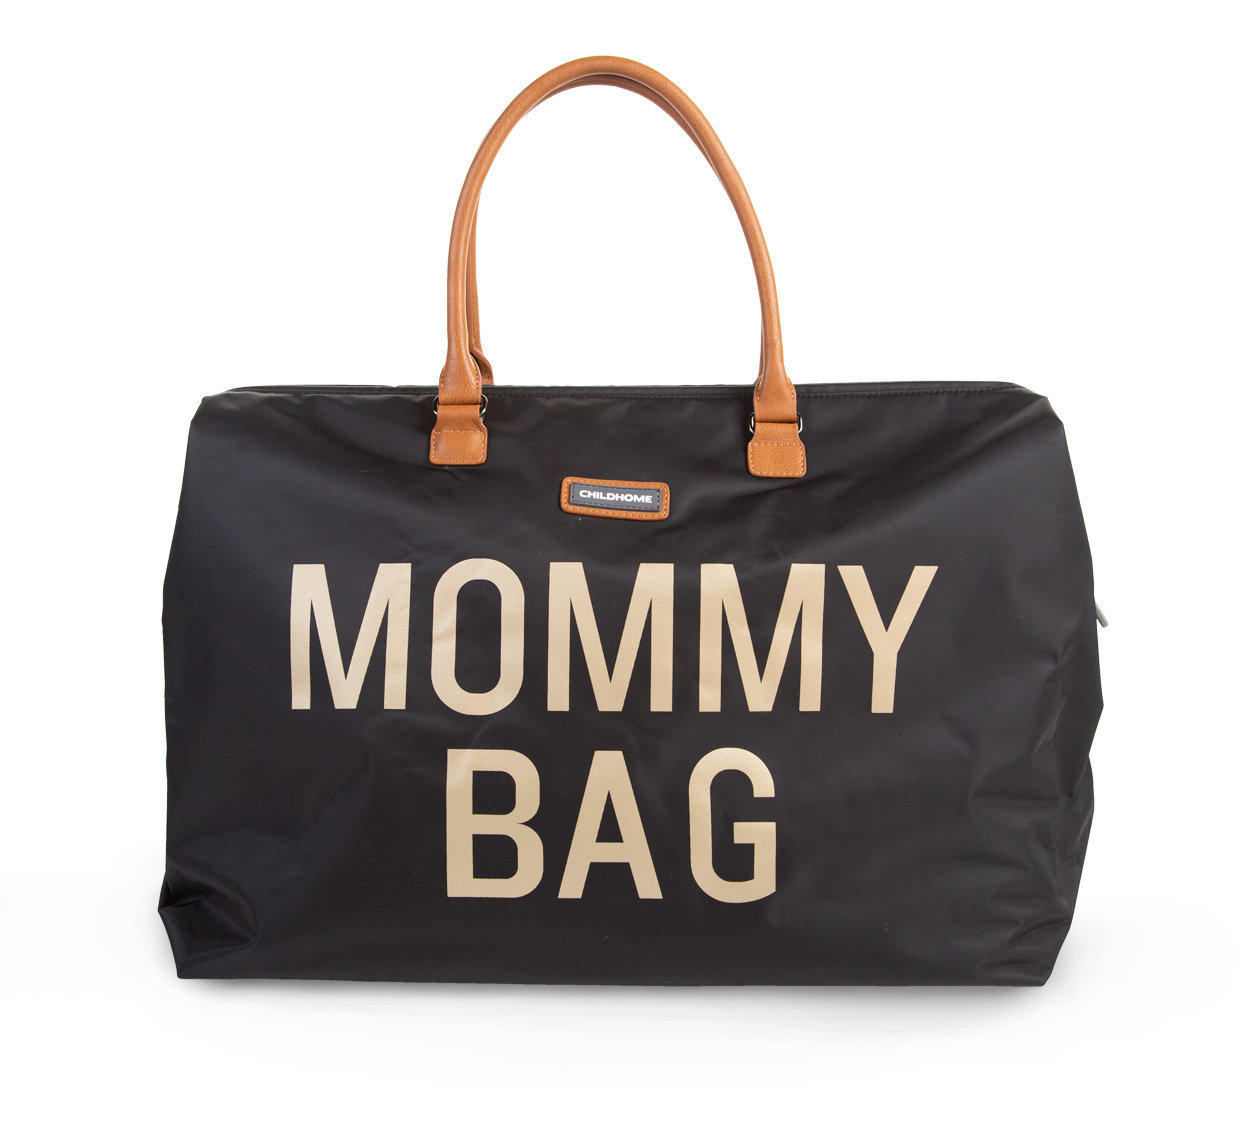 Prebaľovacia taška  Mommy Bag Big Black Gold